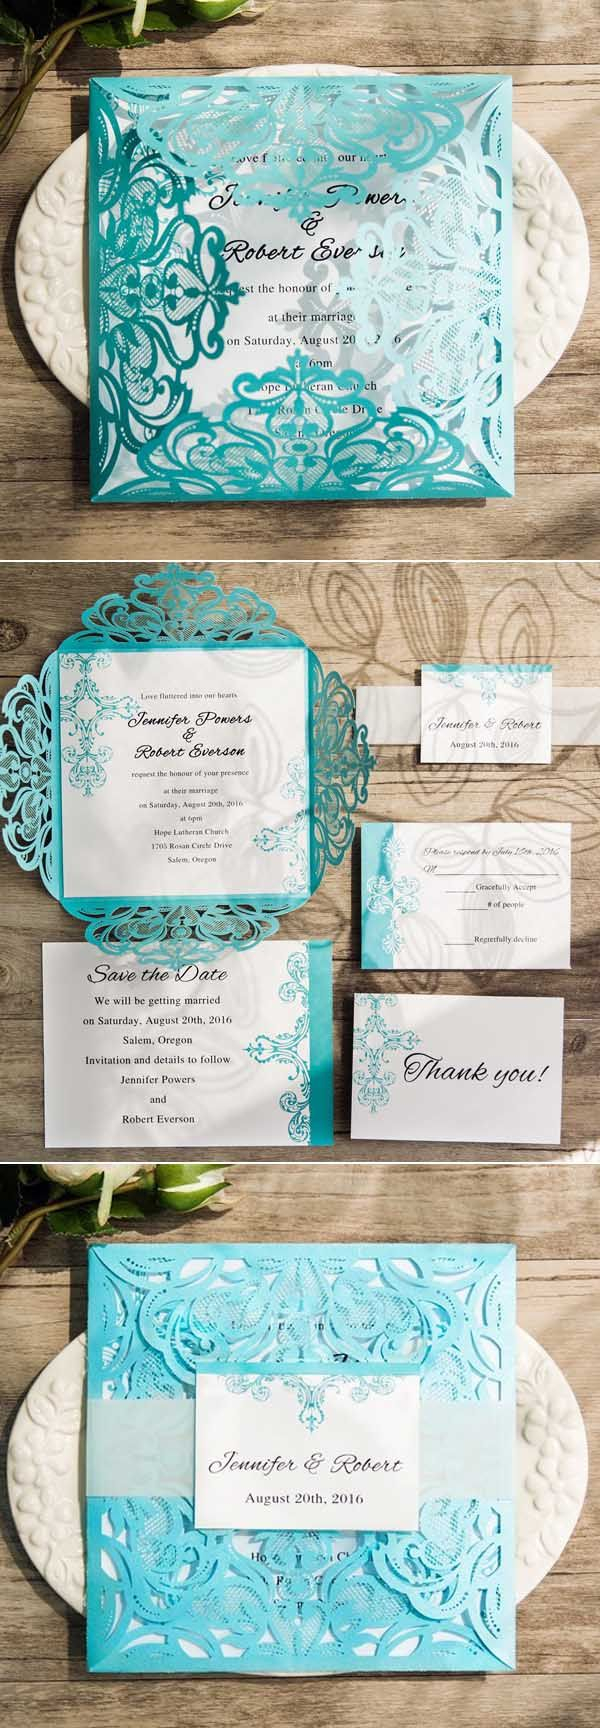 Teal Wedding Invitations Kits Awesome Ideas For Your Tiffany Blue Themed Wedding Prty Pl